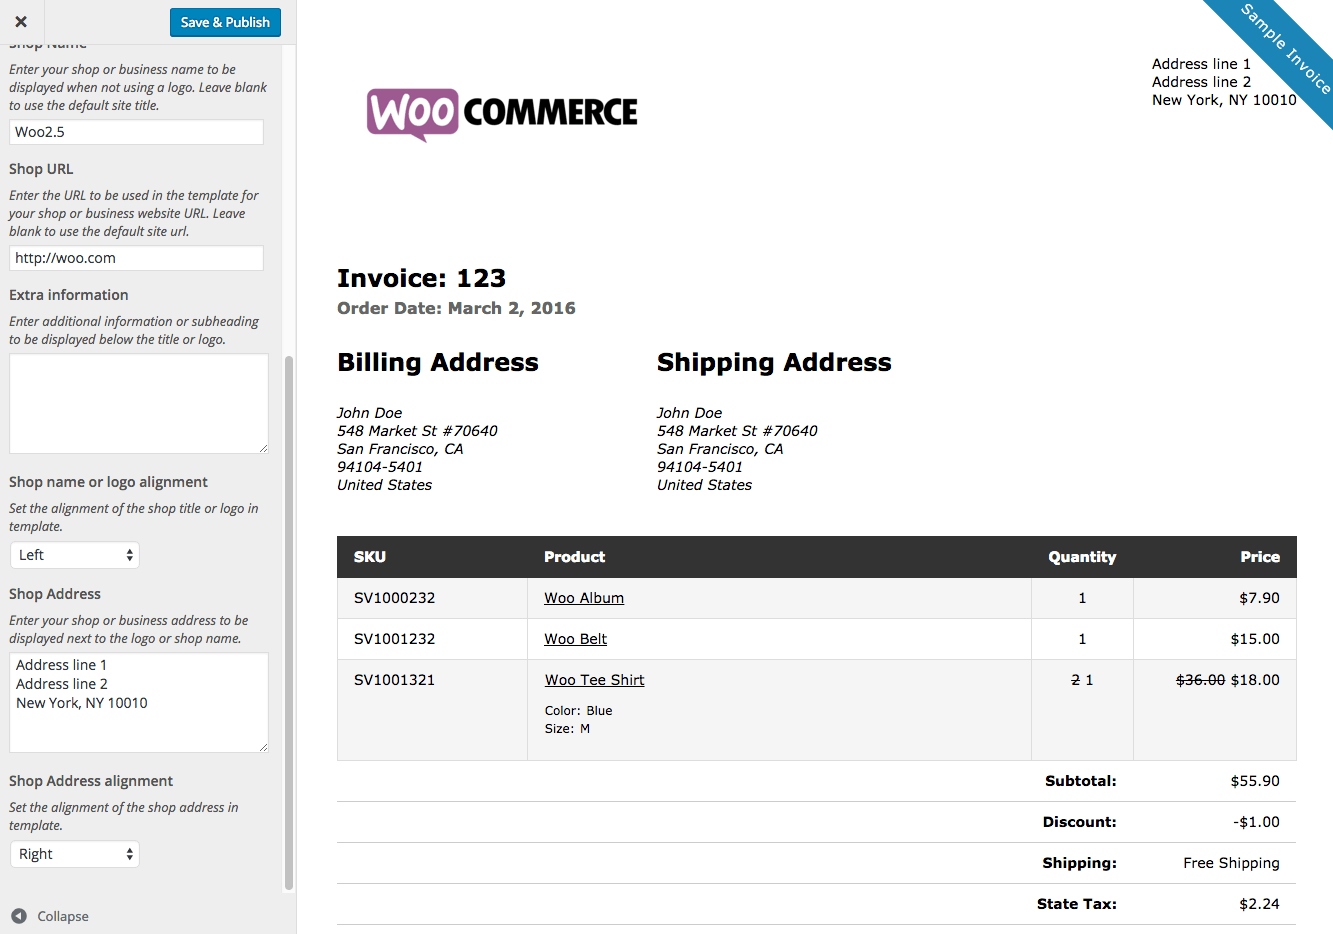 Maidofhonortoastus  Unique Woocommerce Print Invoices Amp Packing Lists  Woocommerce Docs With Fascinating Woocommerce Print Invoices  Packing Lists Customizer With Agreeable How To Pay Invoice Also Wordpress Invoice In Addition Paypal Send An Invoice And How To Fill Out A Invoice As Well As Invoice Tracking Spreadsheet Additionally Adp Online Invoice From Docswoocommercecom With Maidofhonortoastus  Fascinating Woocommerce Print Invoices Amp Packing Lists  Woocommerce Docs With Agreeable Woocommerce Print Invoices  Packing Lists Customizer And Unique How To Pay Invoice Also Wordpress Invoice In Addition Paypal Send An Invoice From Docswoocommercecom